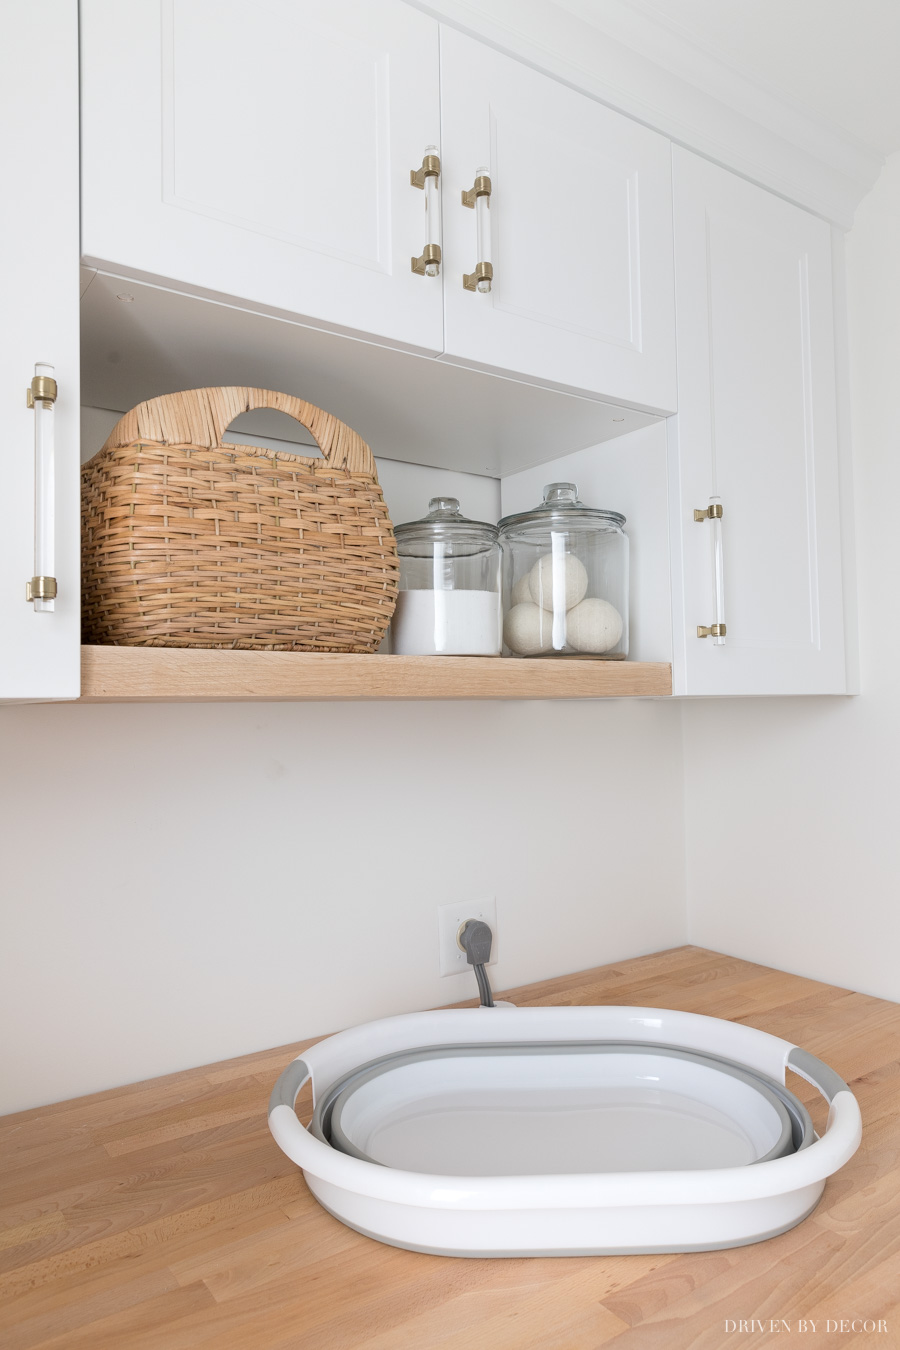 This collapsible laundry basket is perfect for storing in small spaces when not in use!